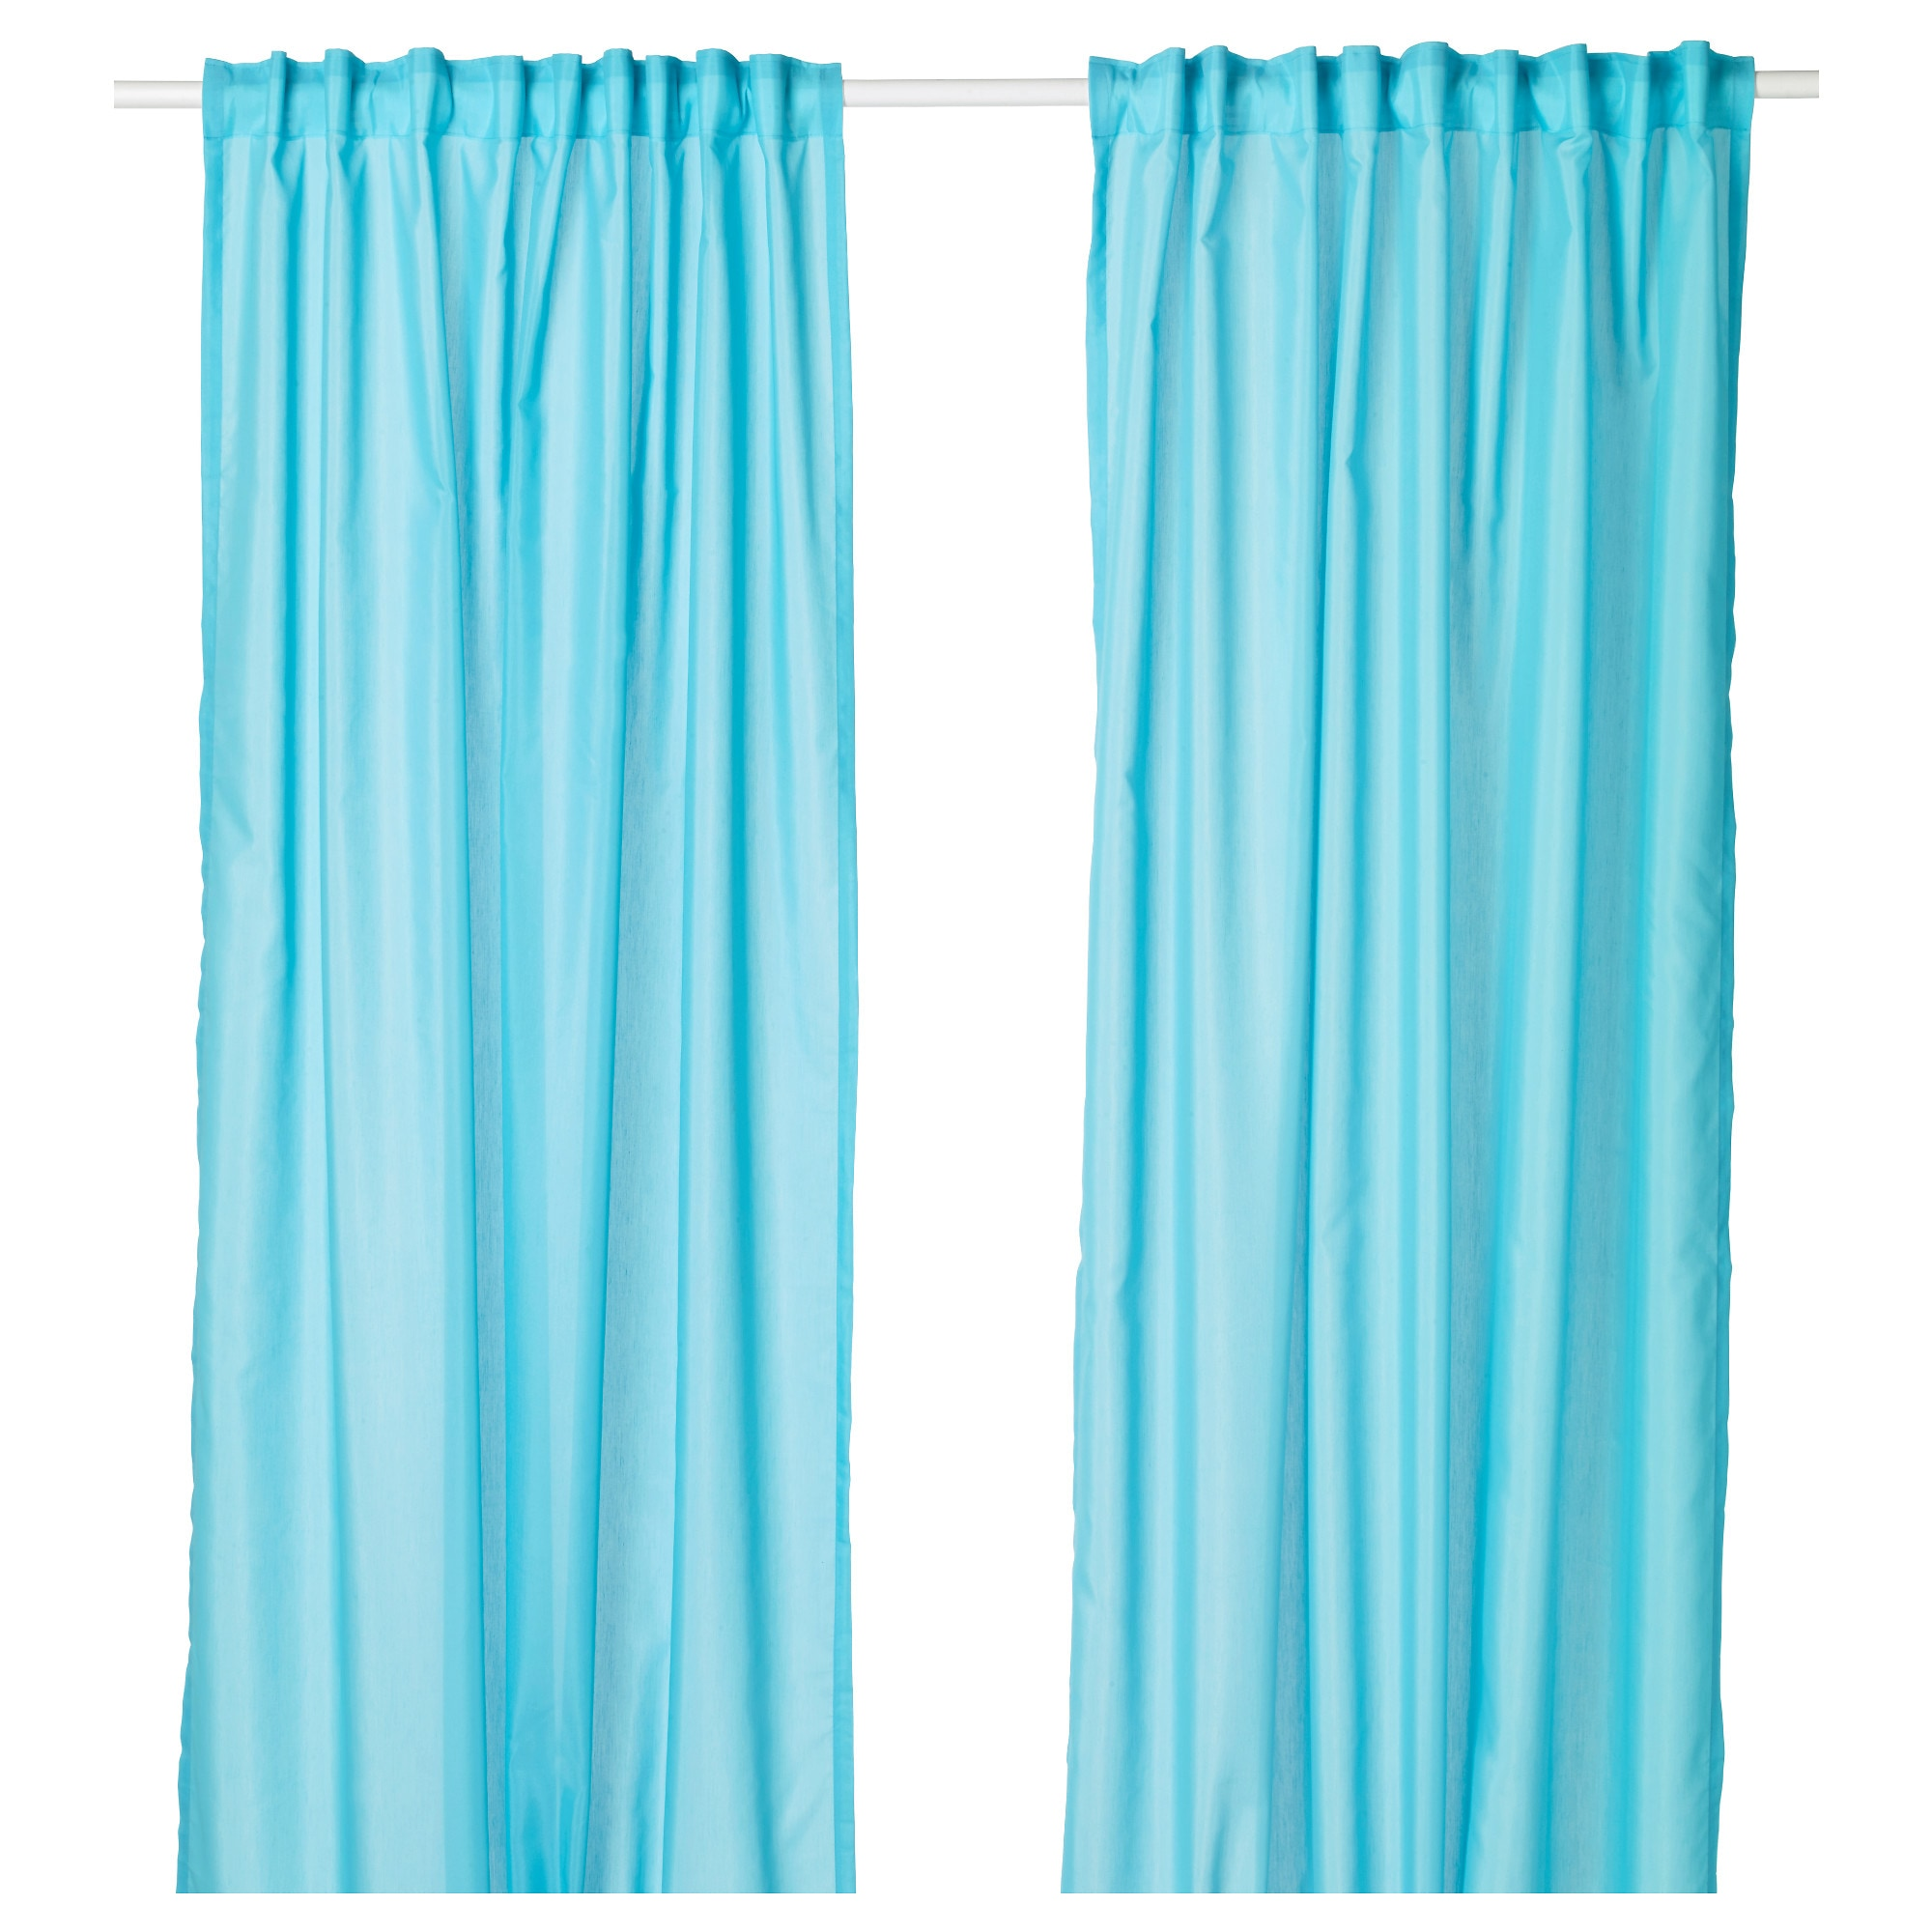 otomi turquoise hw showercurtdetail curtain shower west curtains web hygge products